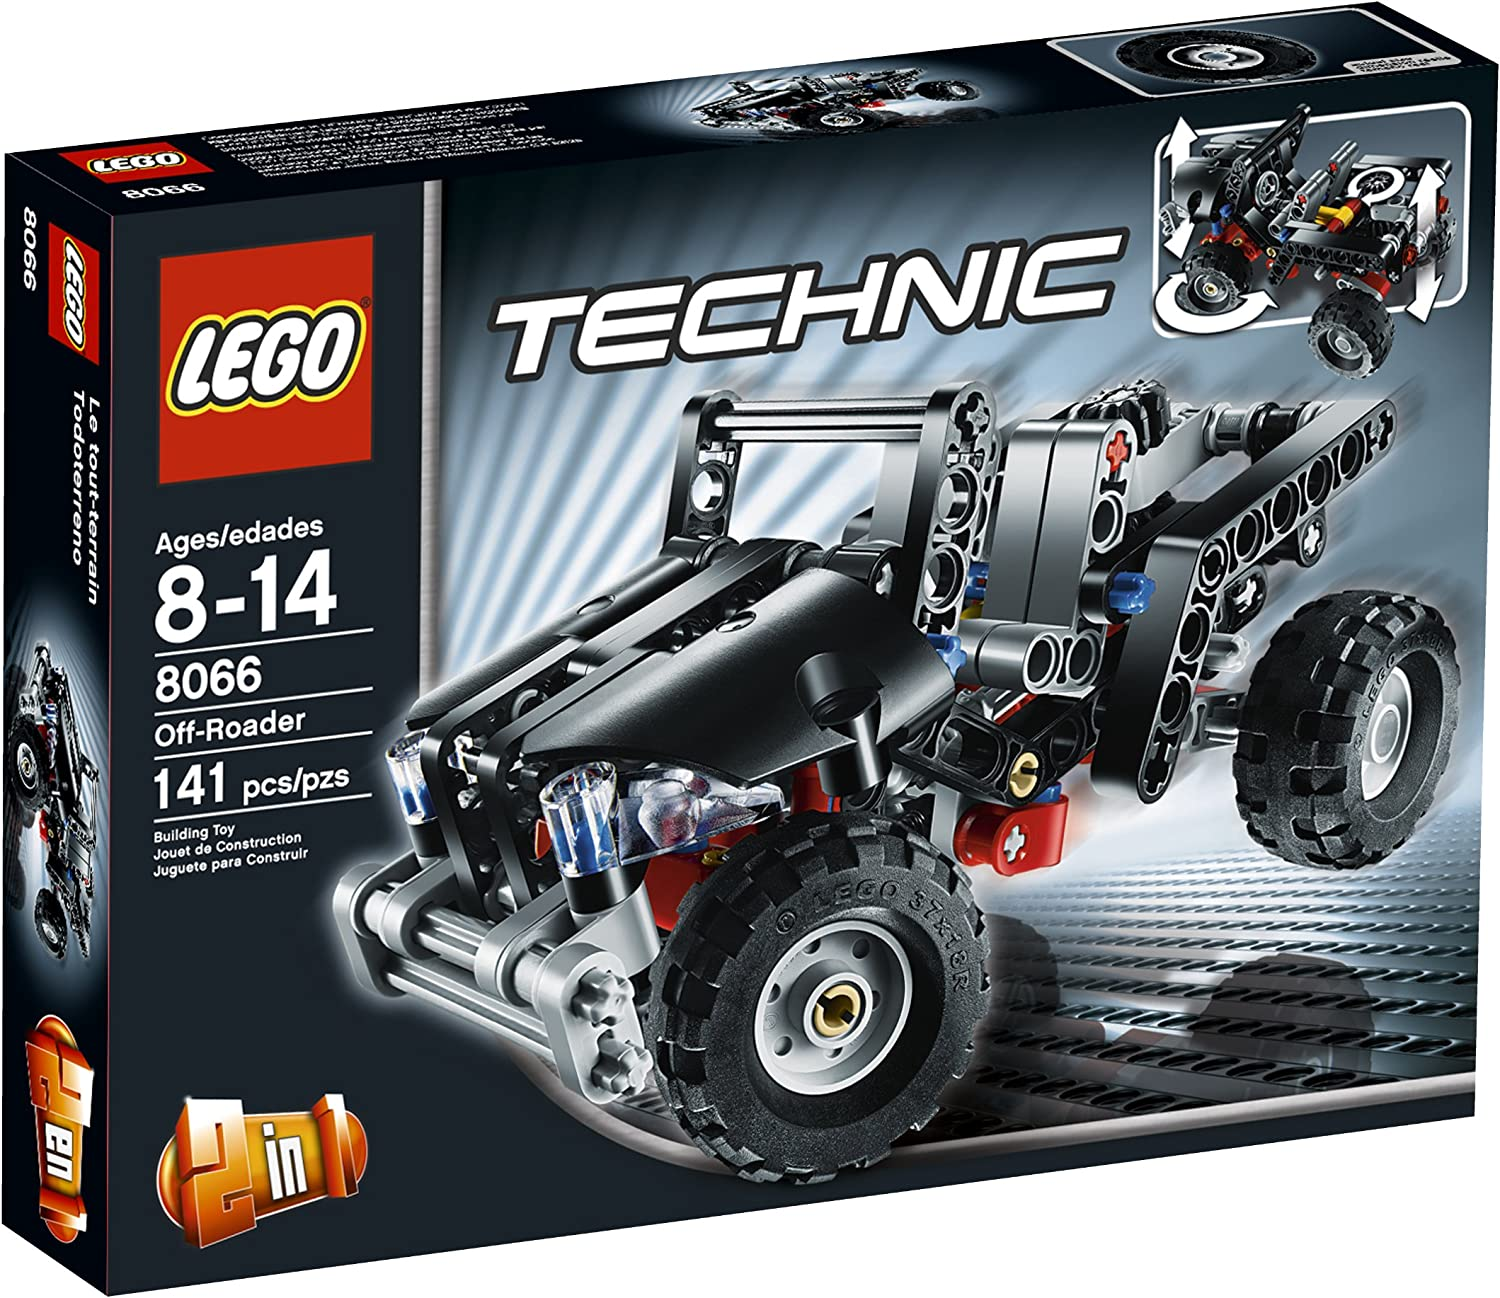 LEGO Technic Off-Roader 8066